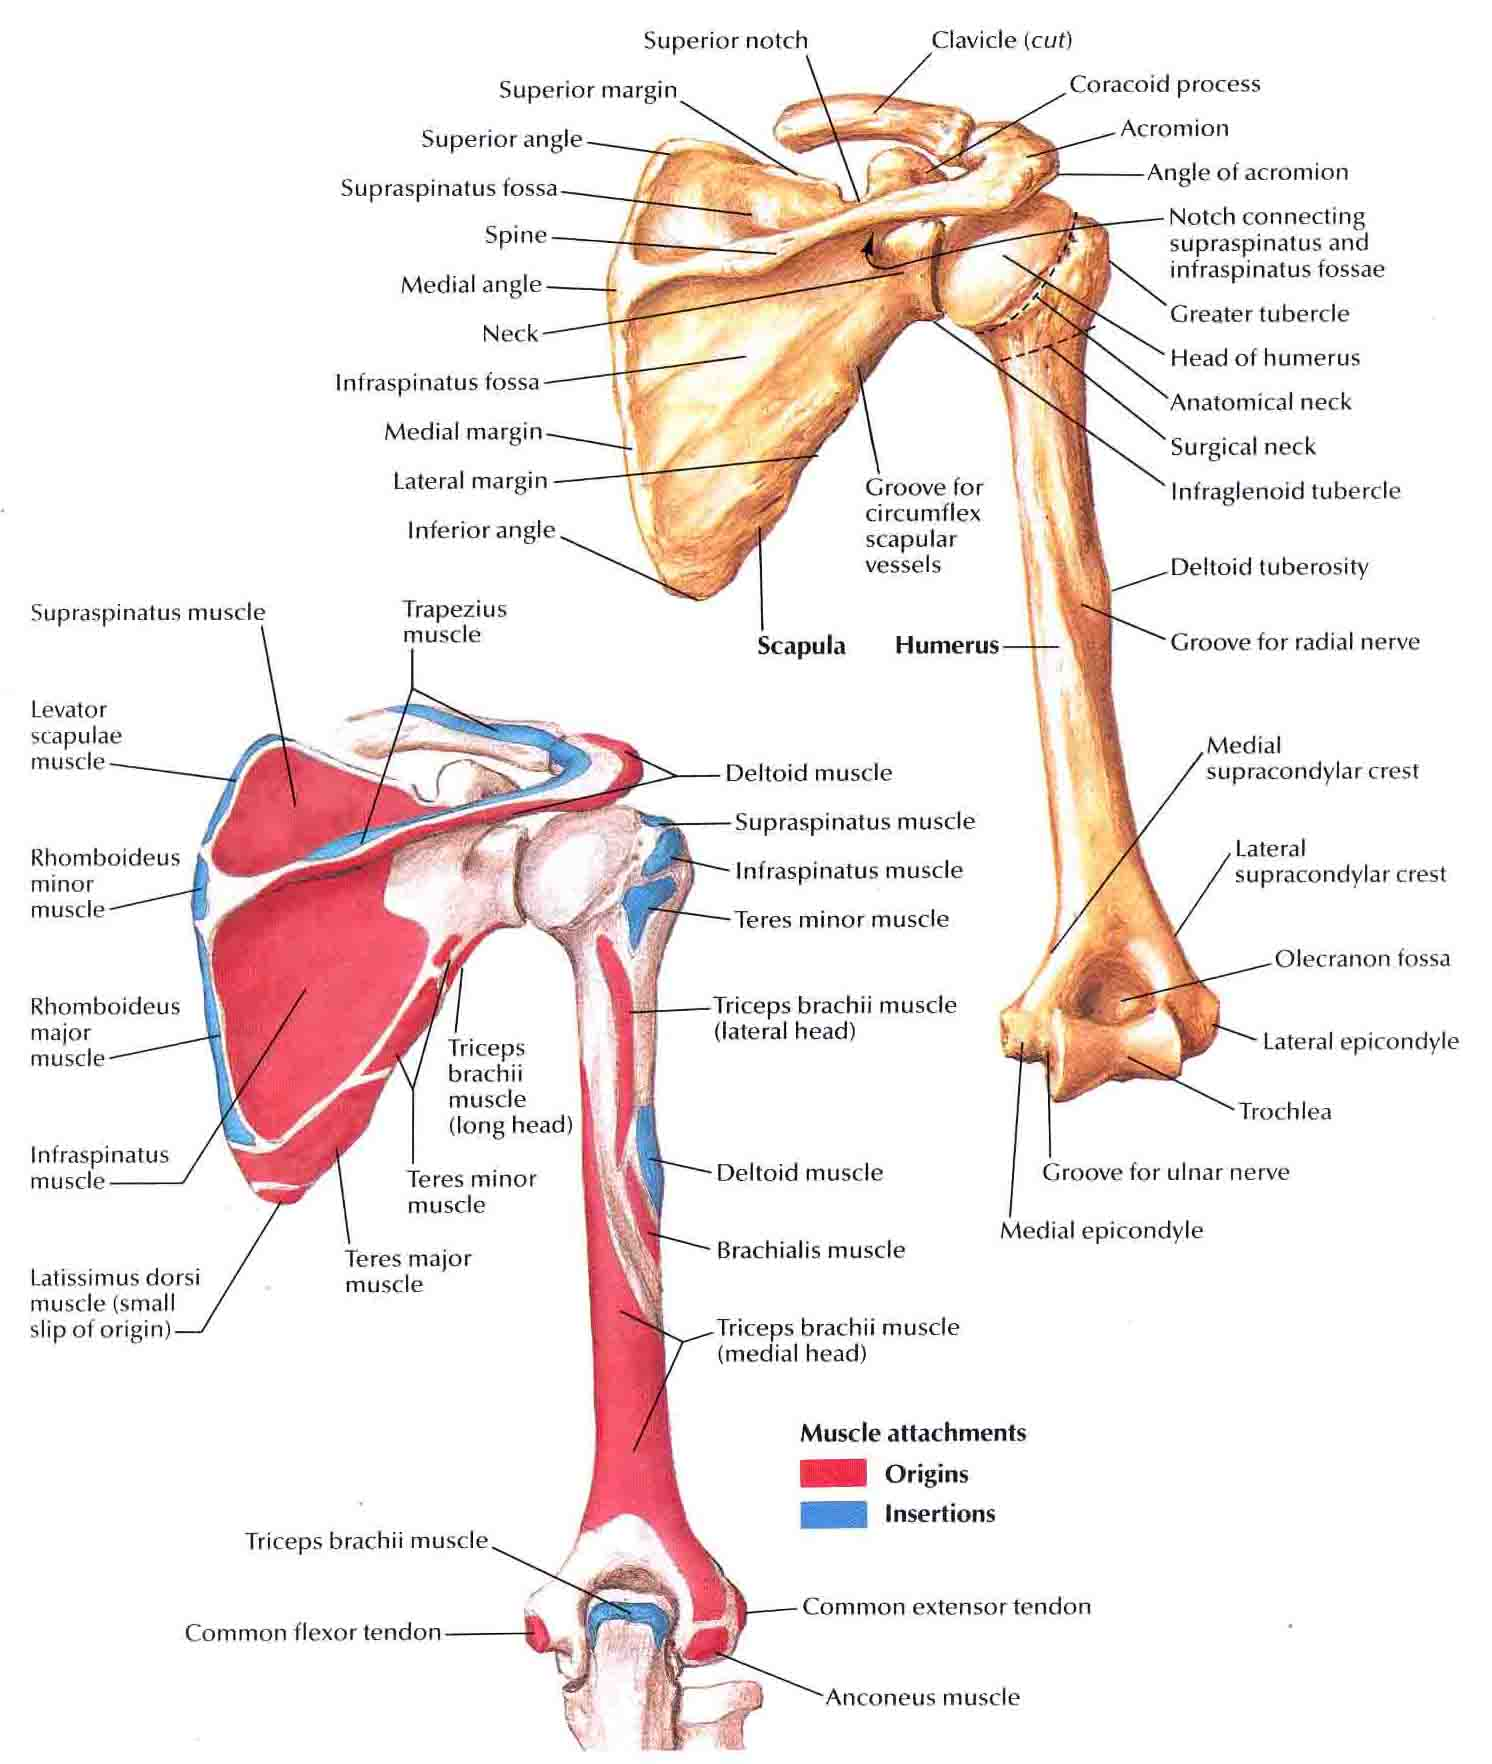 Humerus and Scapula-Posterior Views | Bedahunmuh's Blog